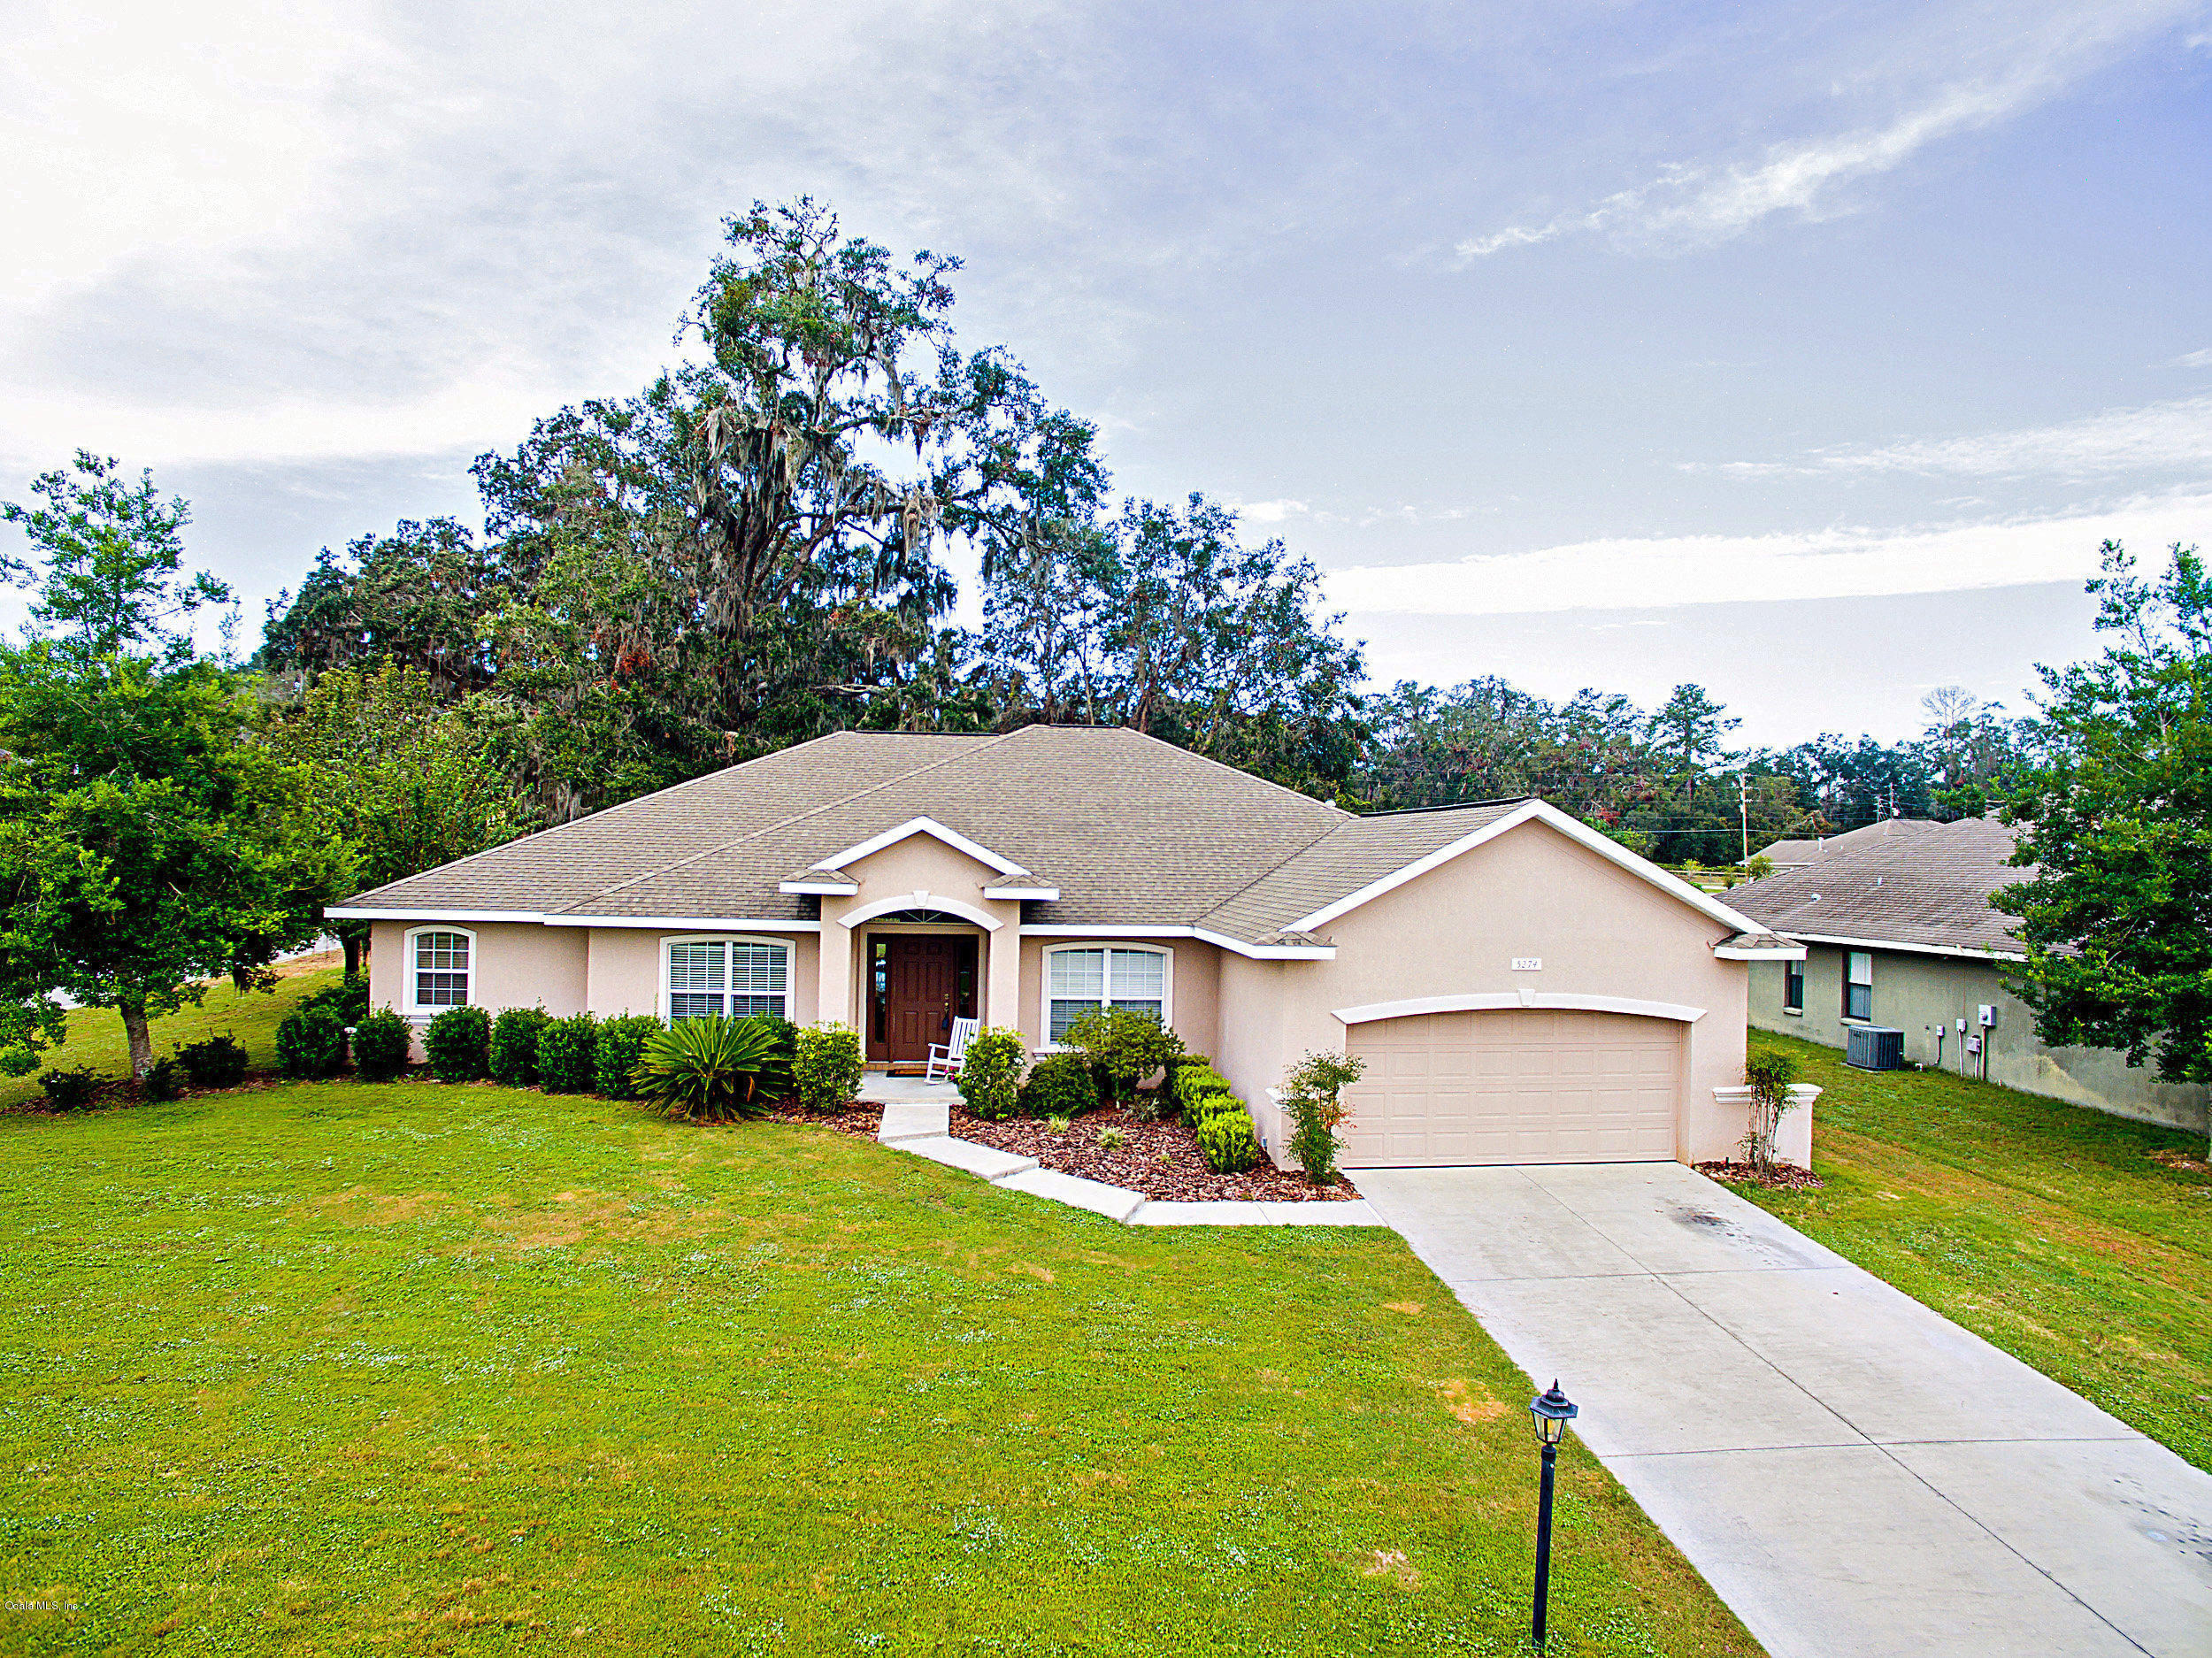 5274 SE 42ND COURT, OCALA, FL 34480